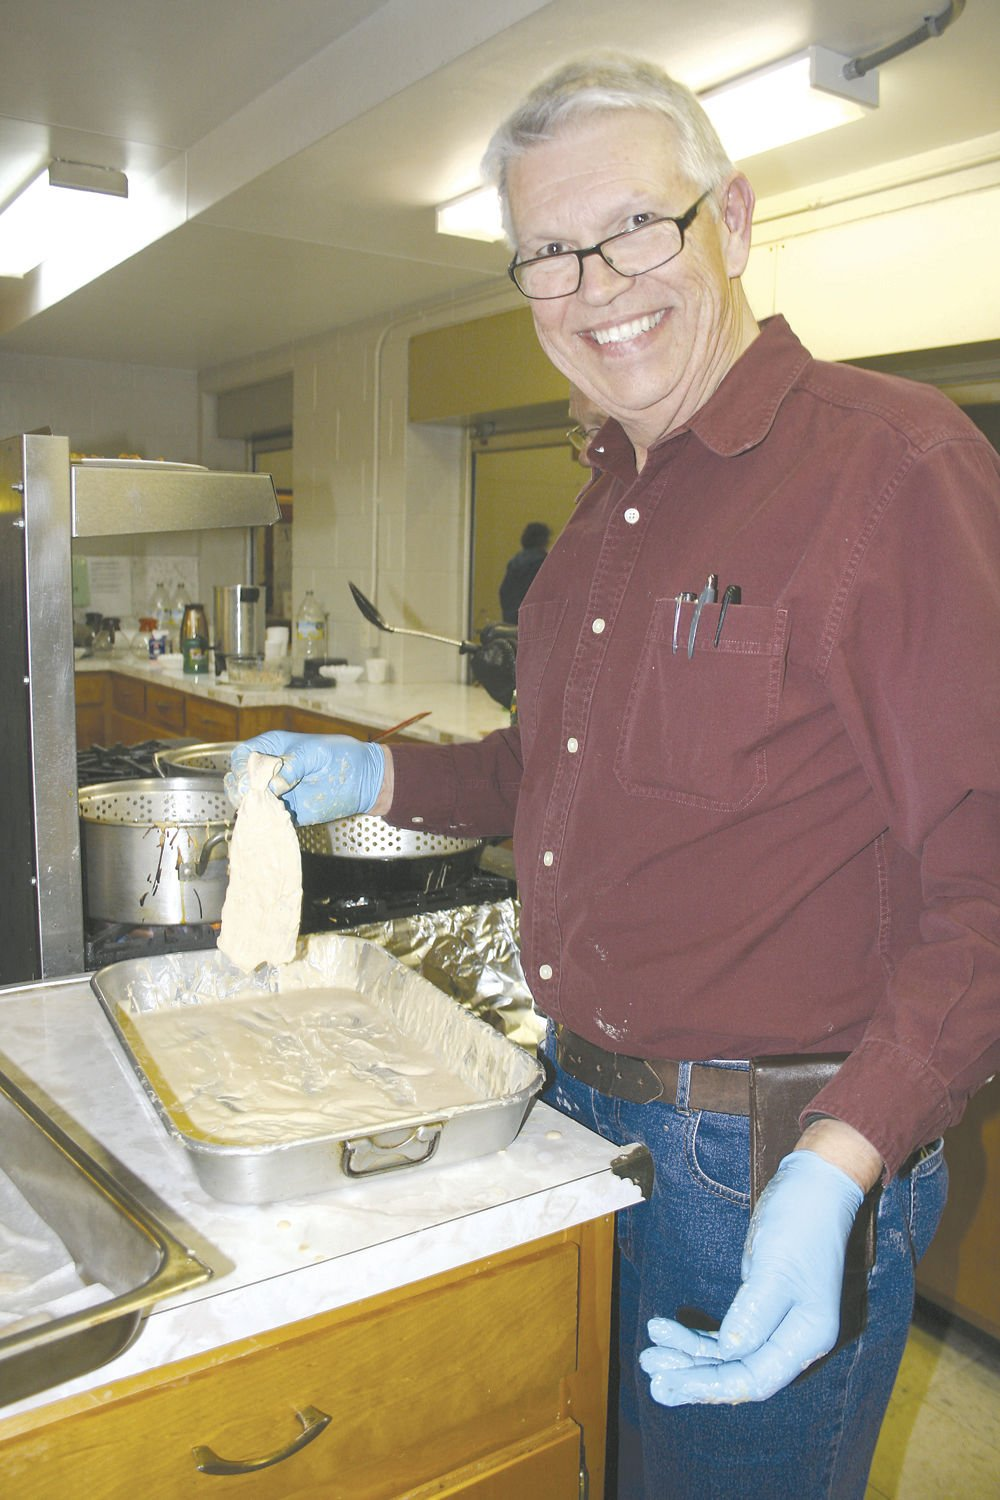 Fry guys keith leonard knights of columbus reel in a for Atlantic fish fry